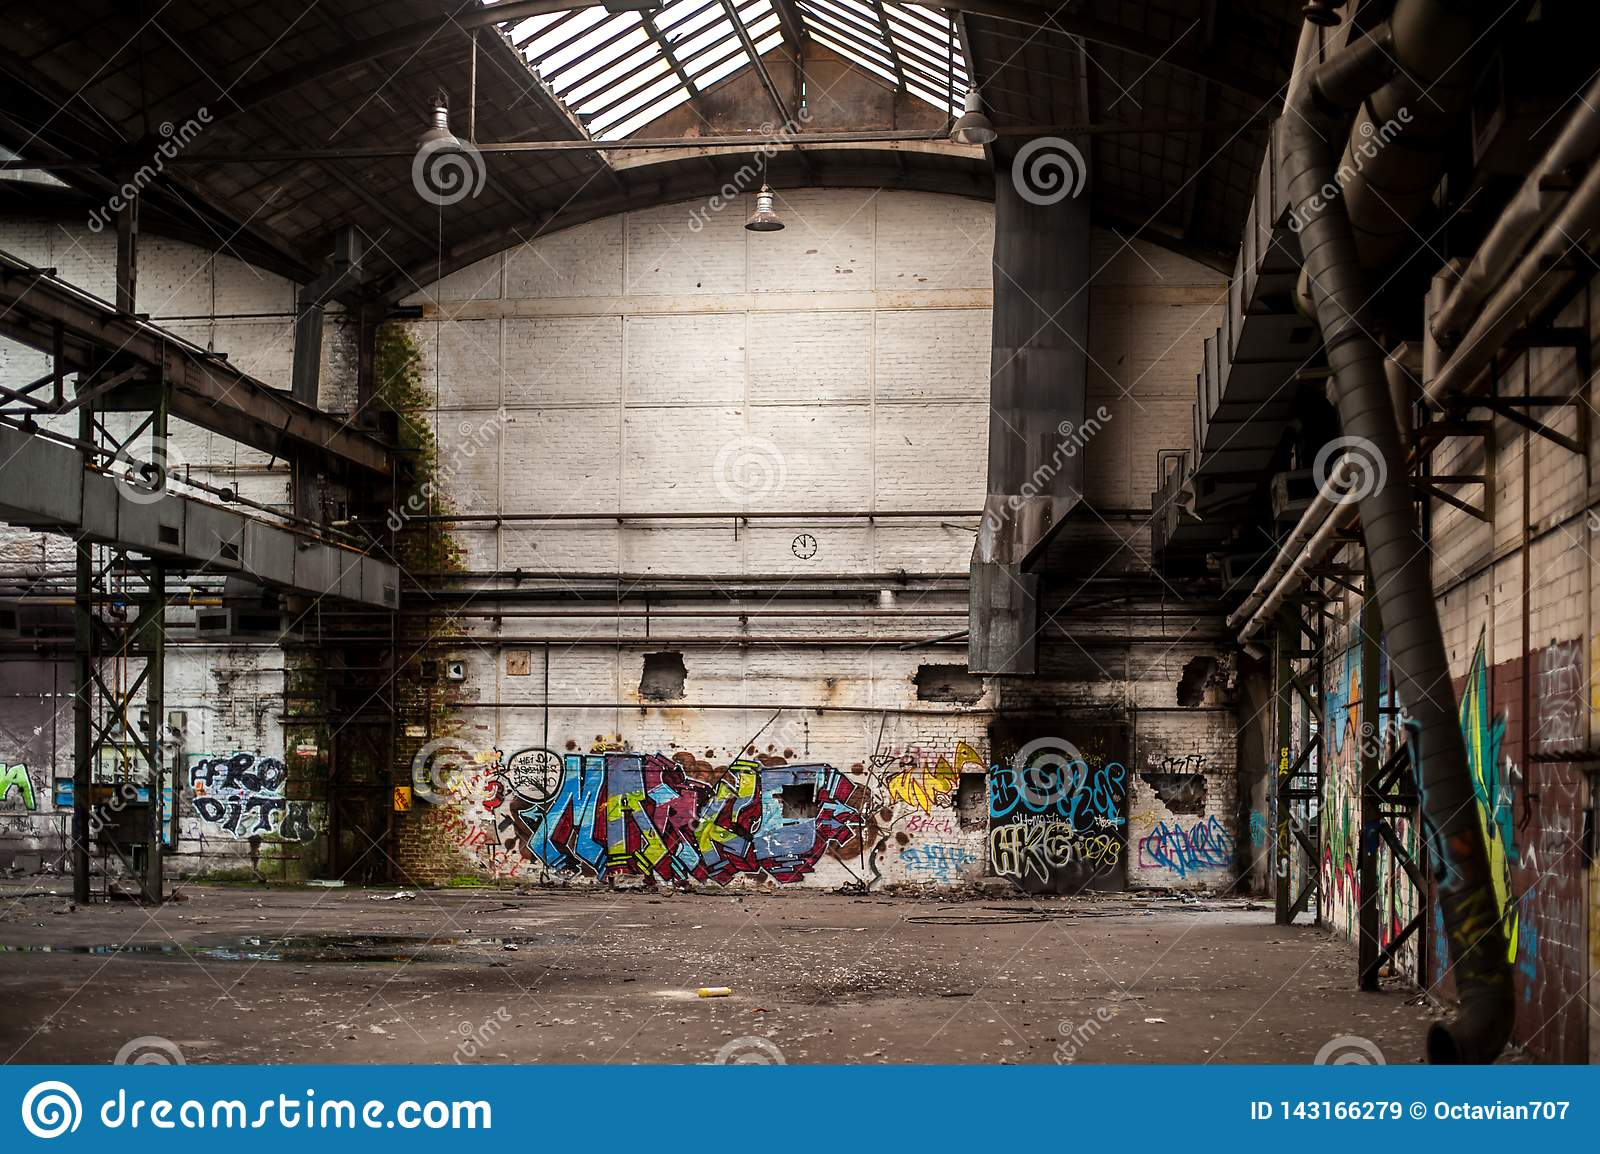 Inside old and abandoned factory building with graffiti